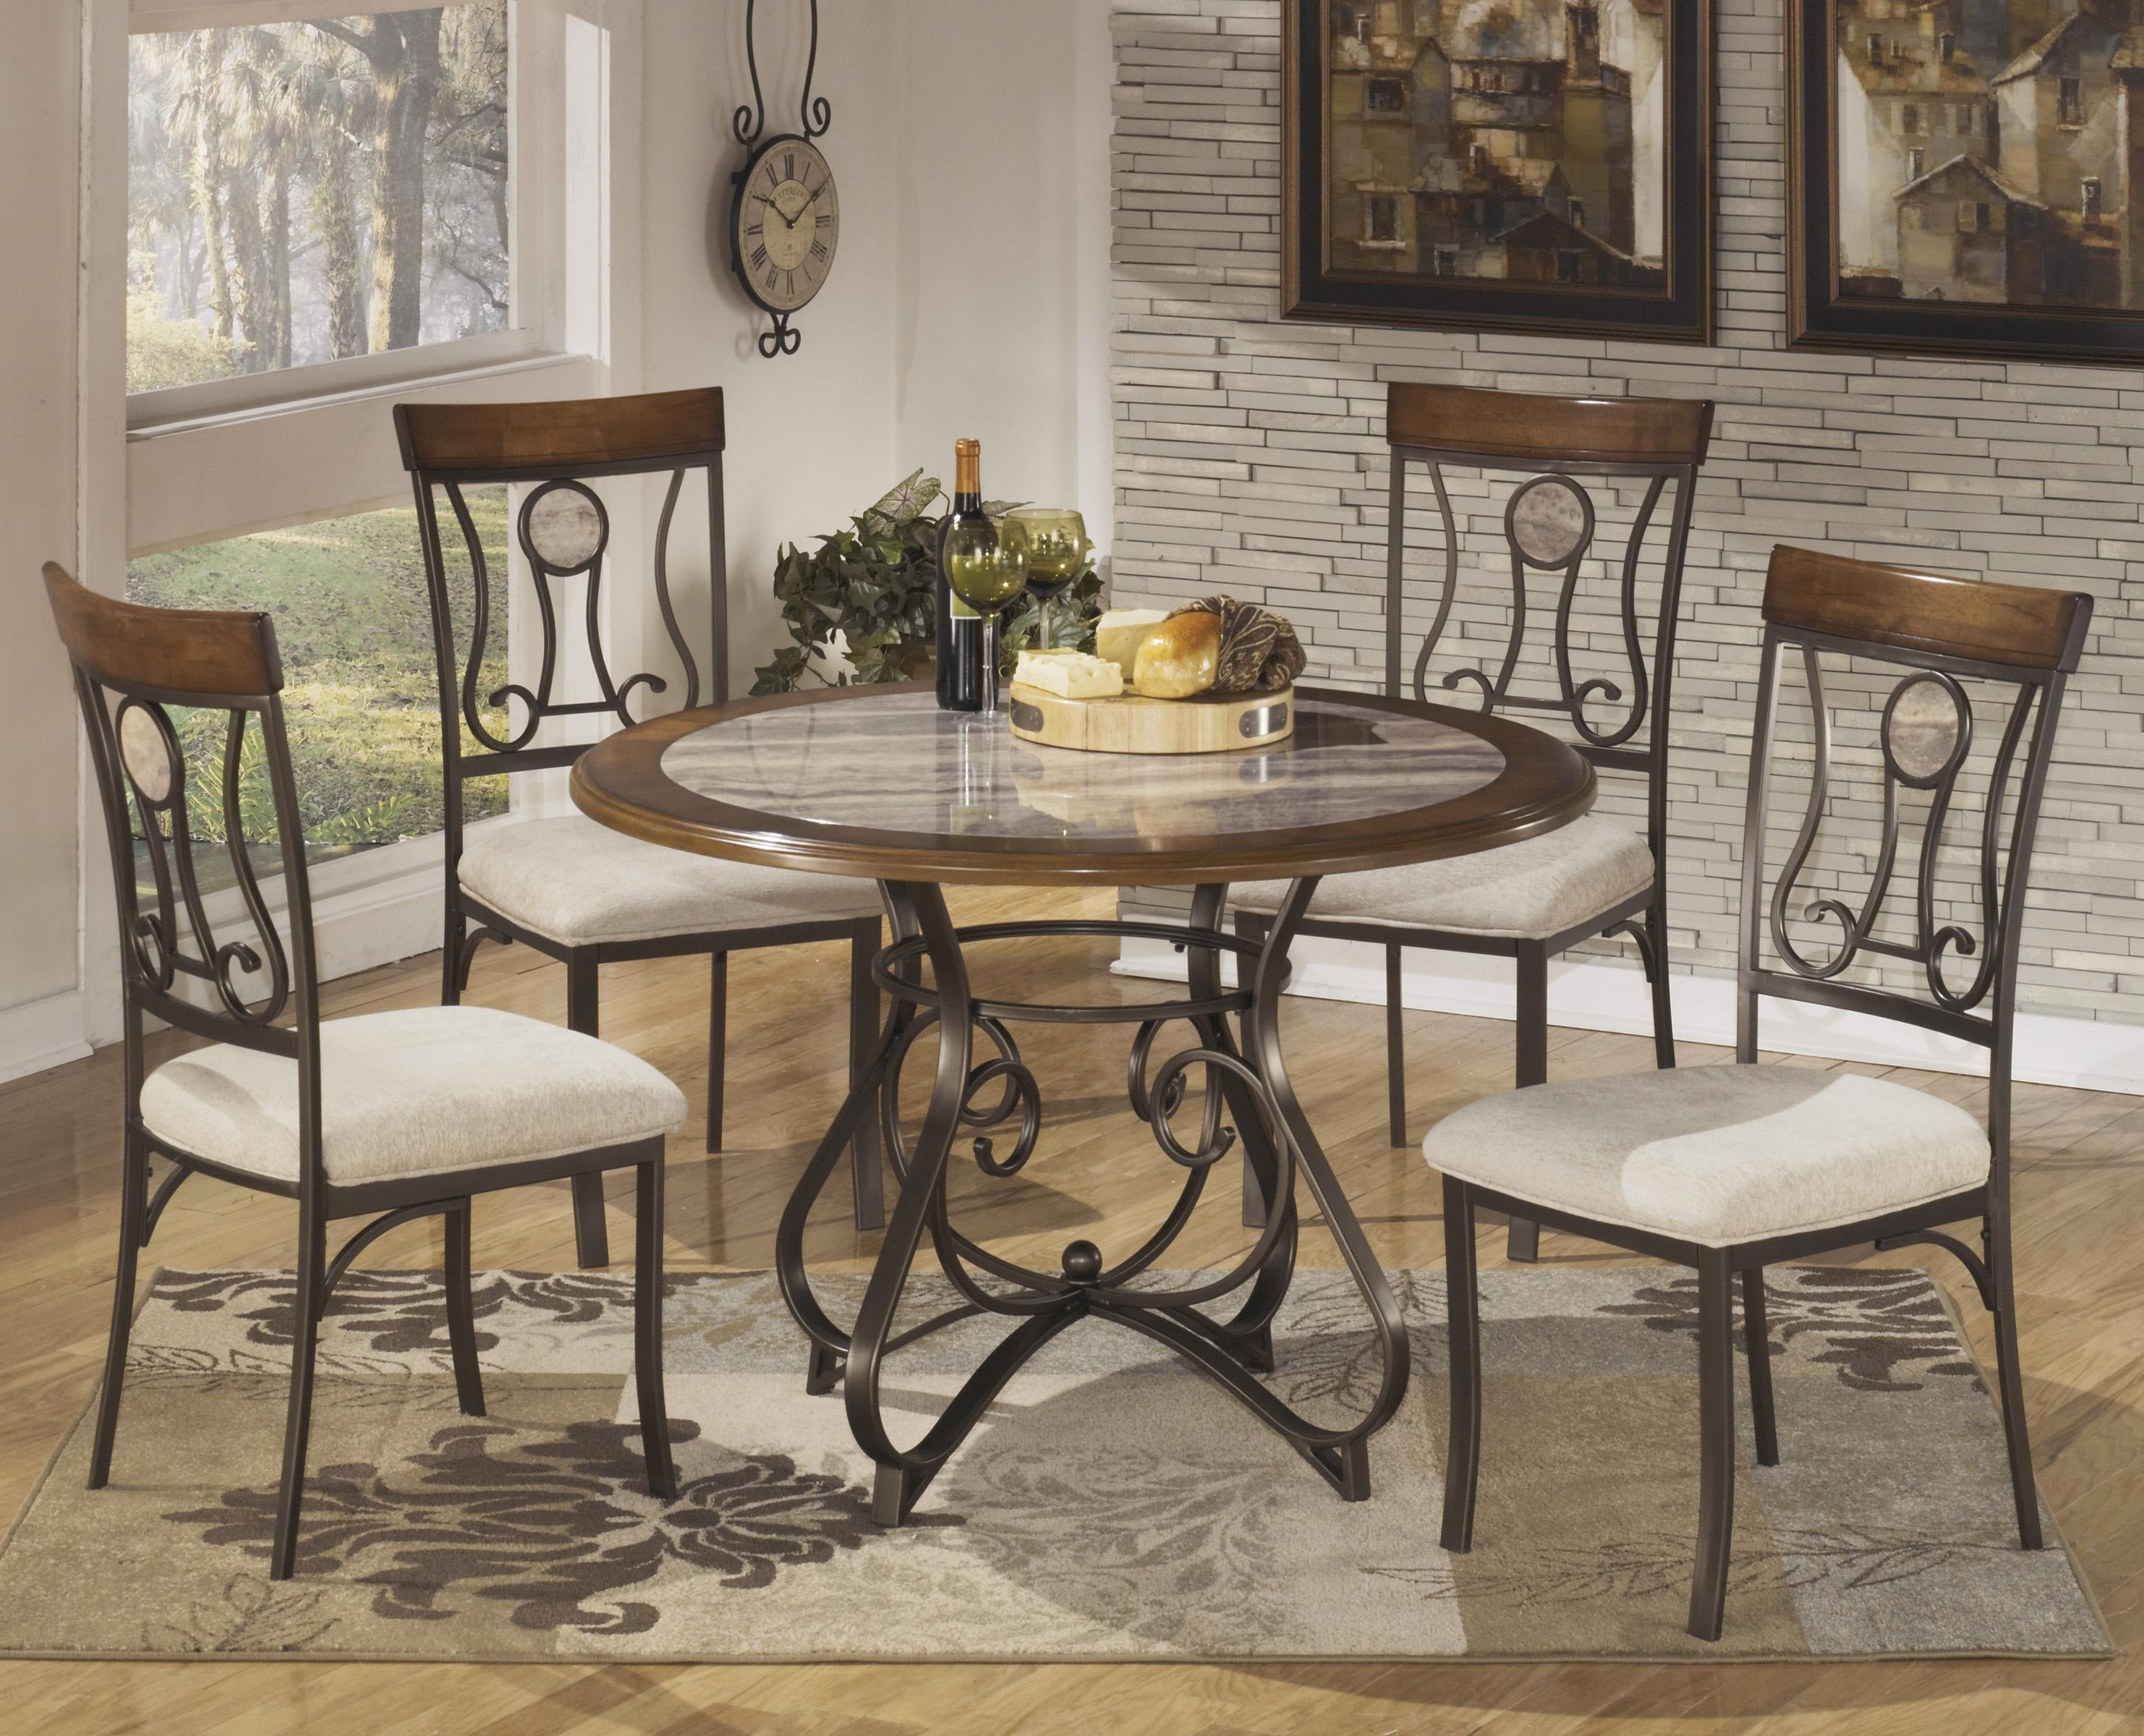 5 piece round dining table set with steel frame faux marble